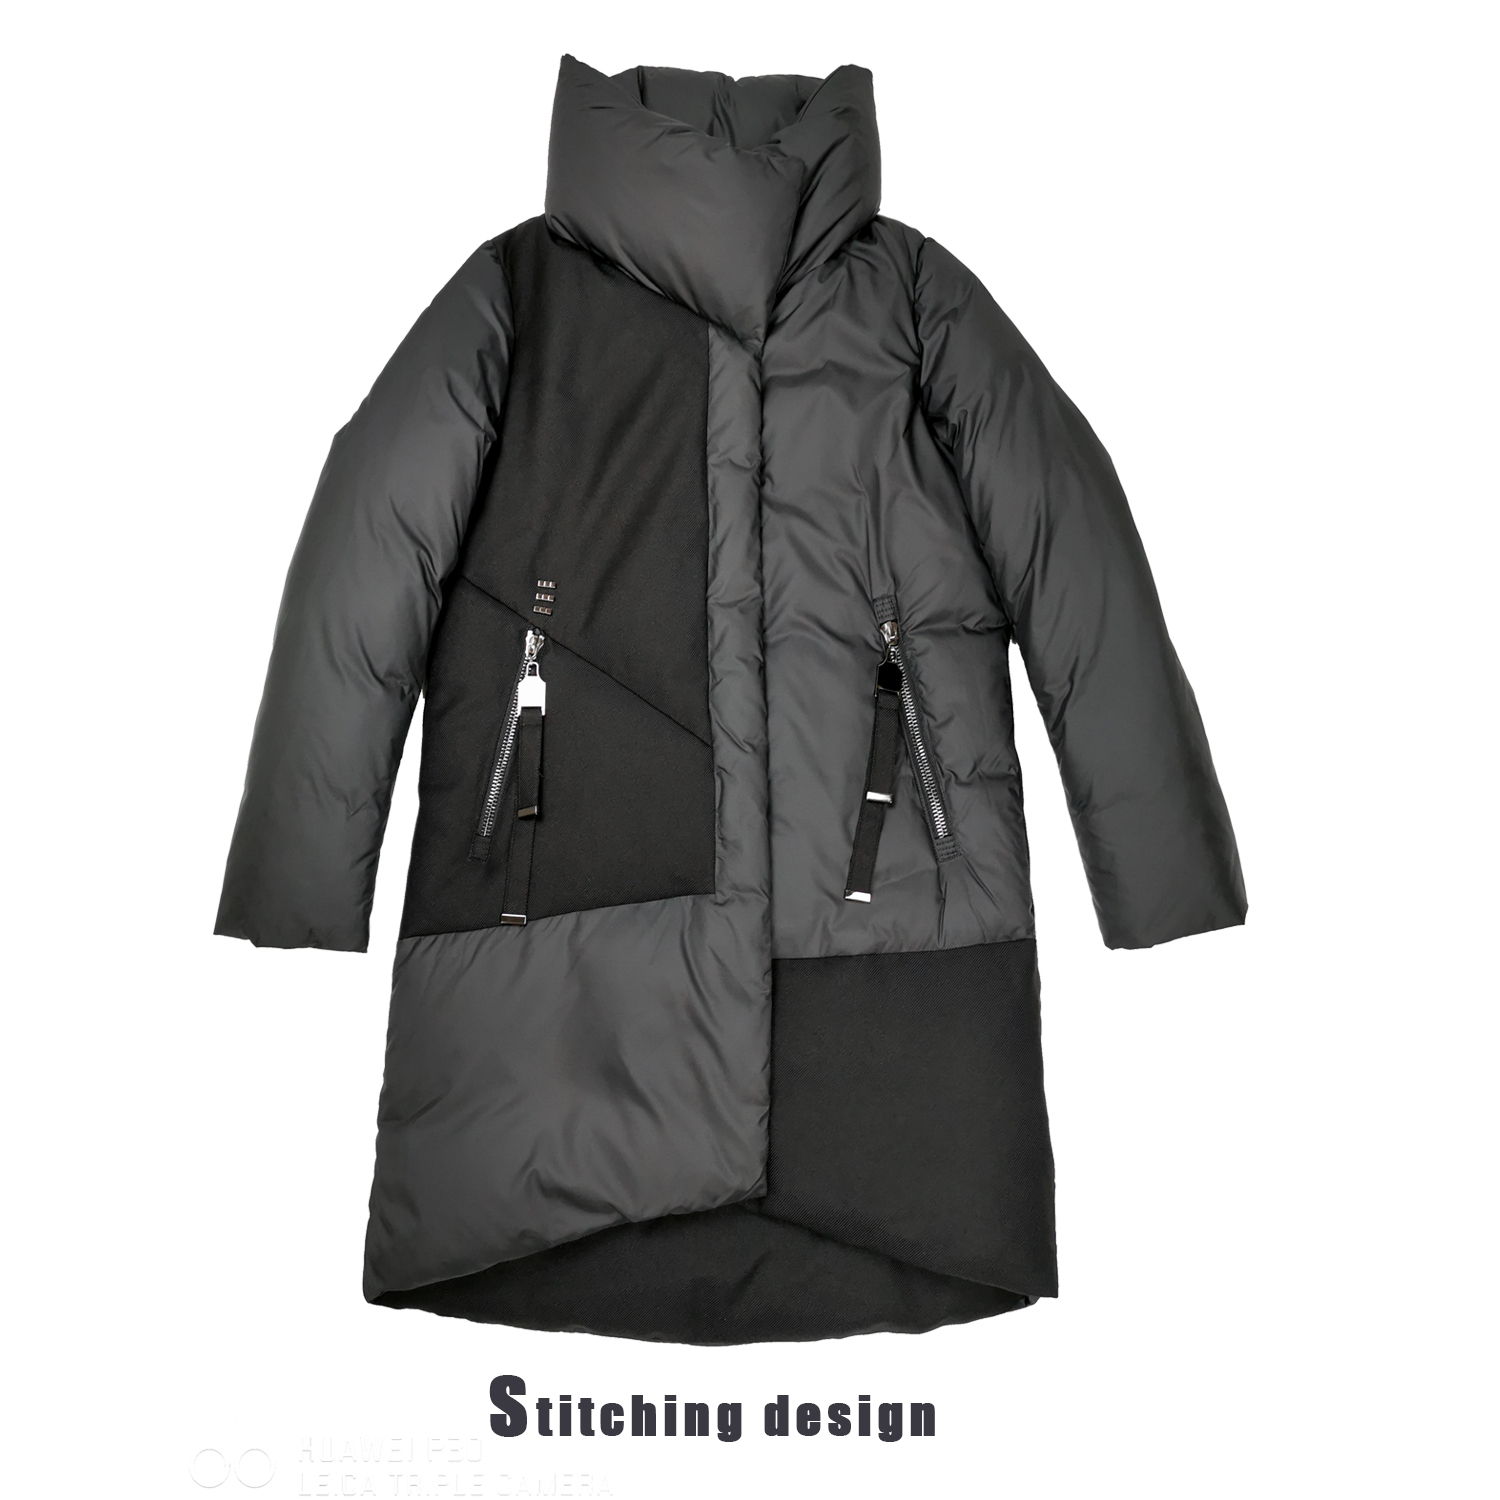 2019New fashion Winter Women   Coat   Jacket With Hood And Winter Parks for Women High Quality Jacket With Hats Fashion Women's   Coat